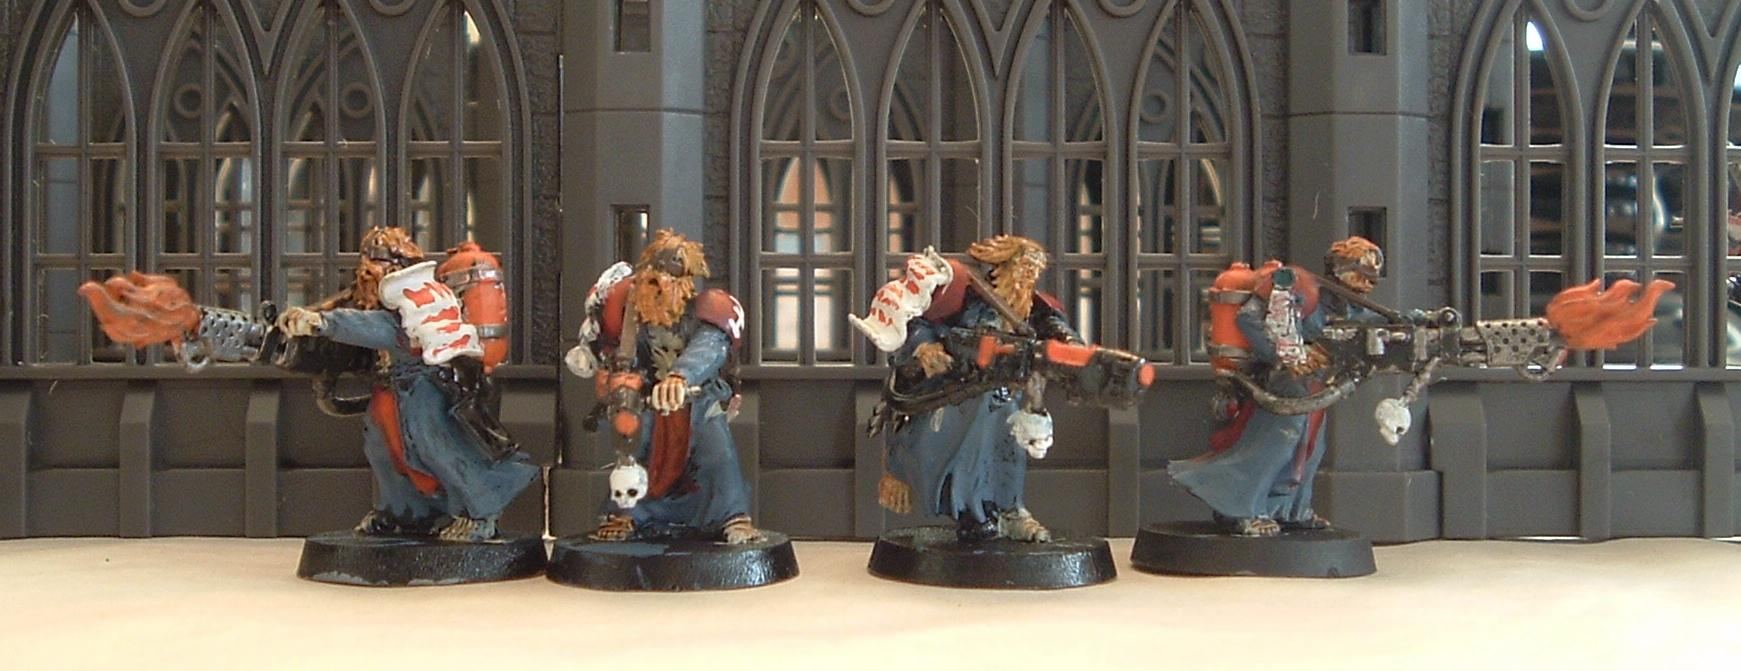 Flagellents, Flamer, Inquisition, Warhammer 40,000, Zealots